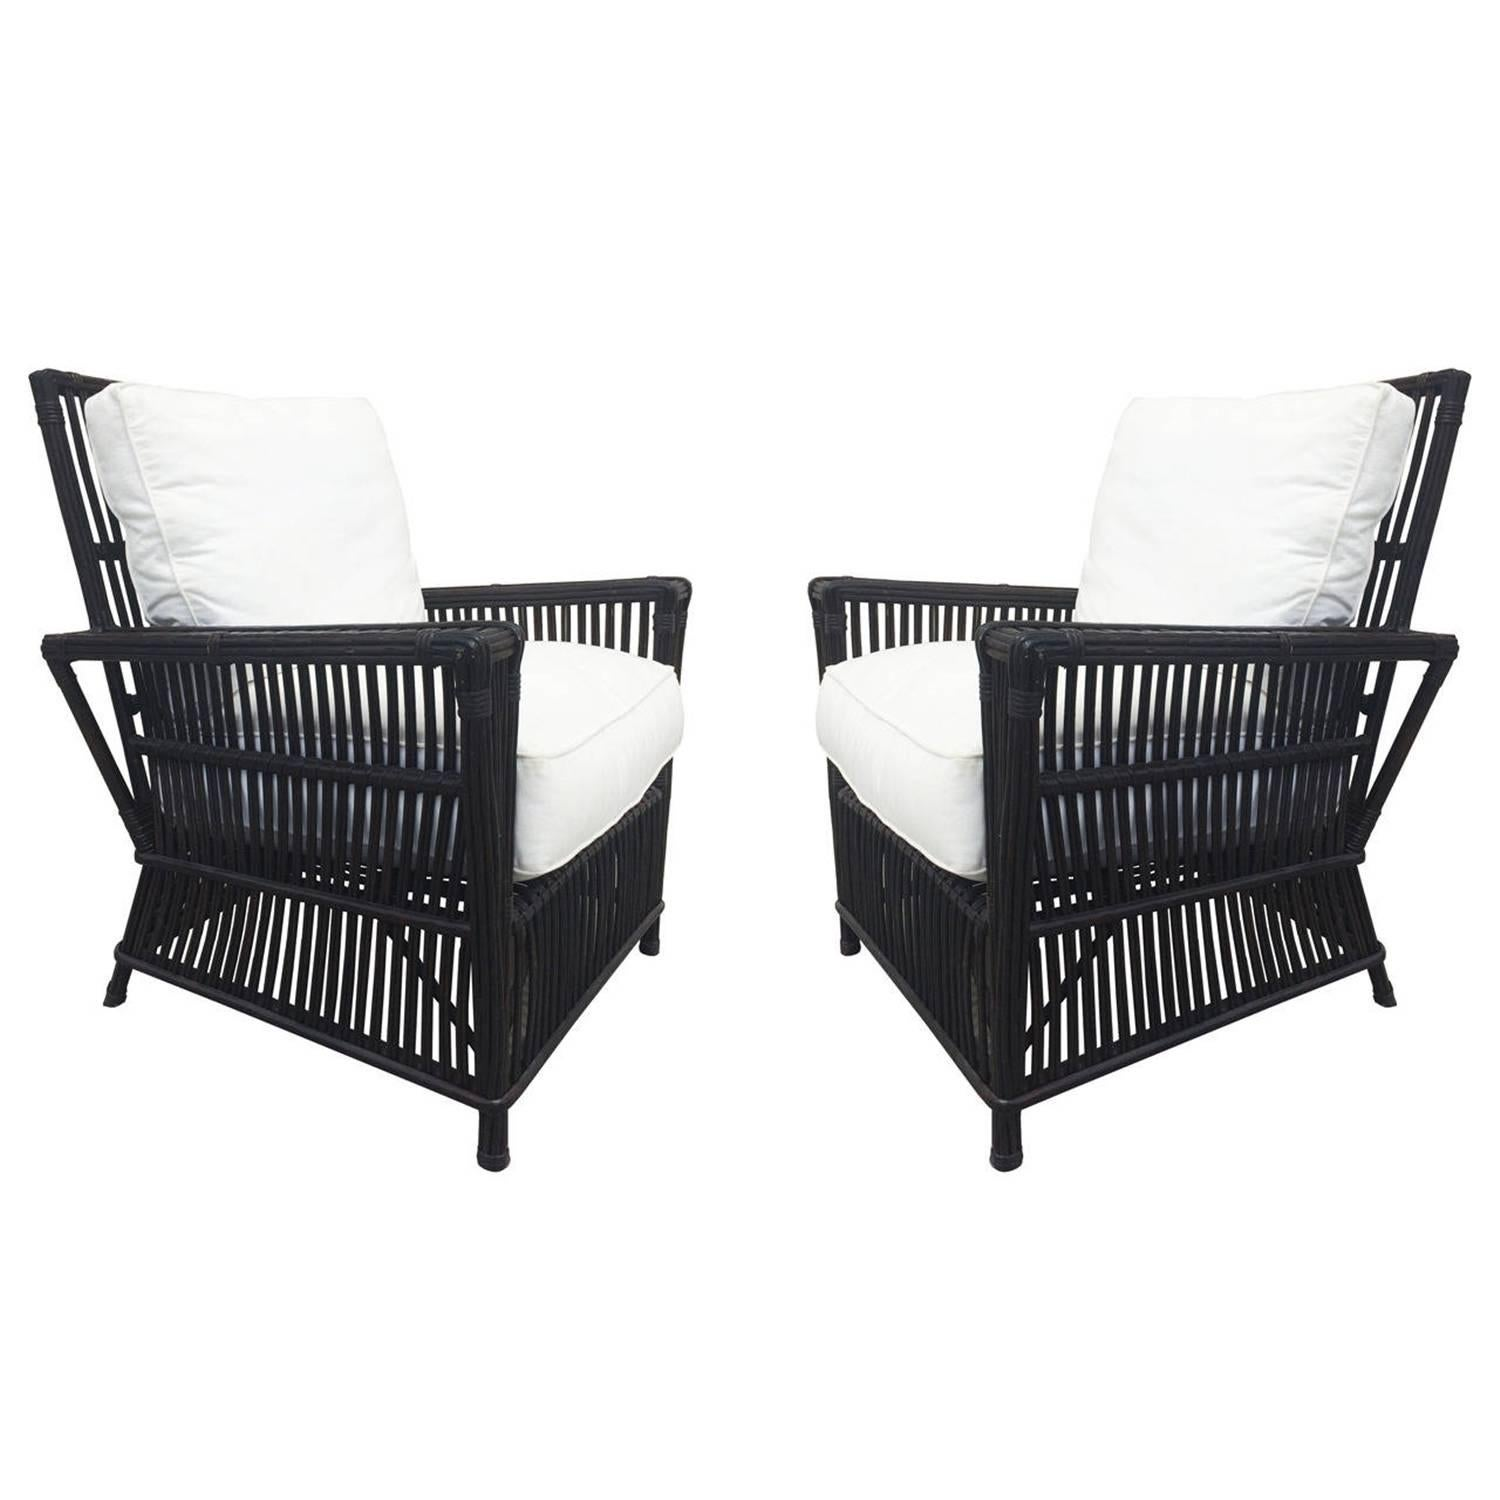 wicker or bamboo patio chairs and ottomans upholstered in white canvas